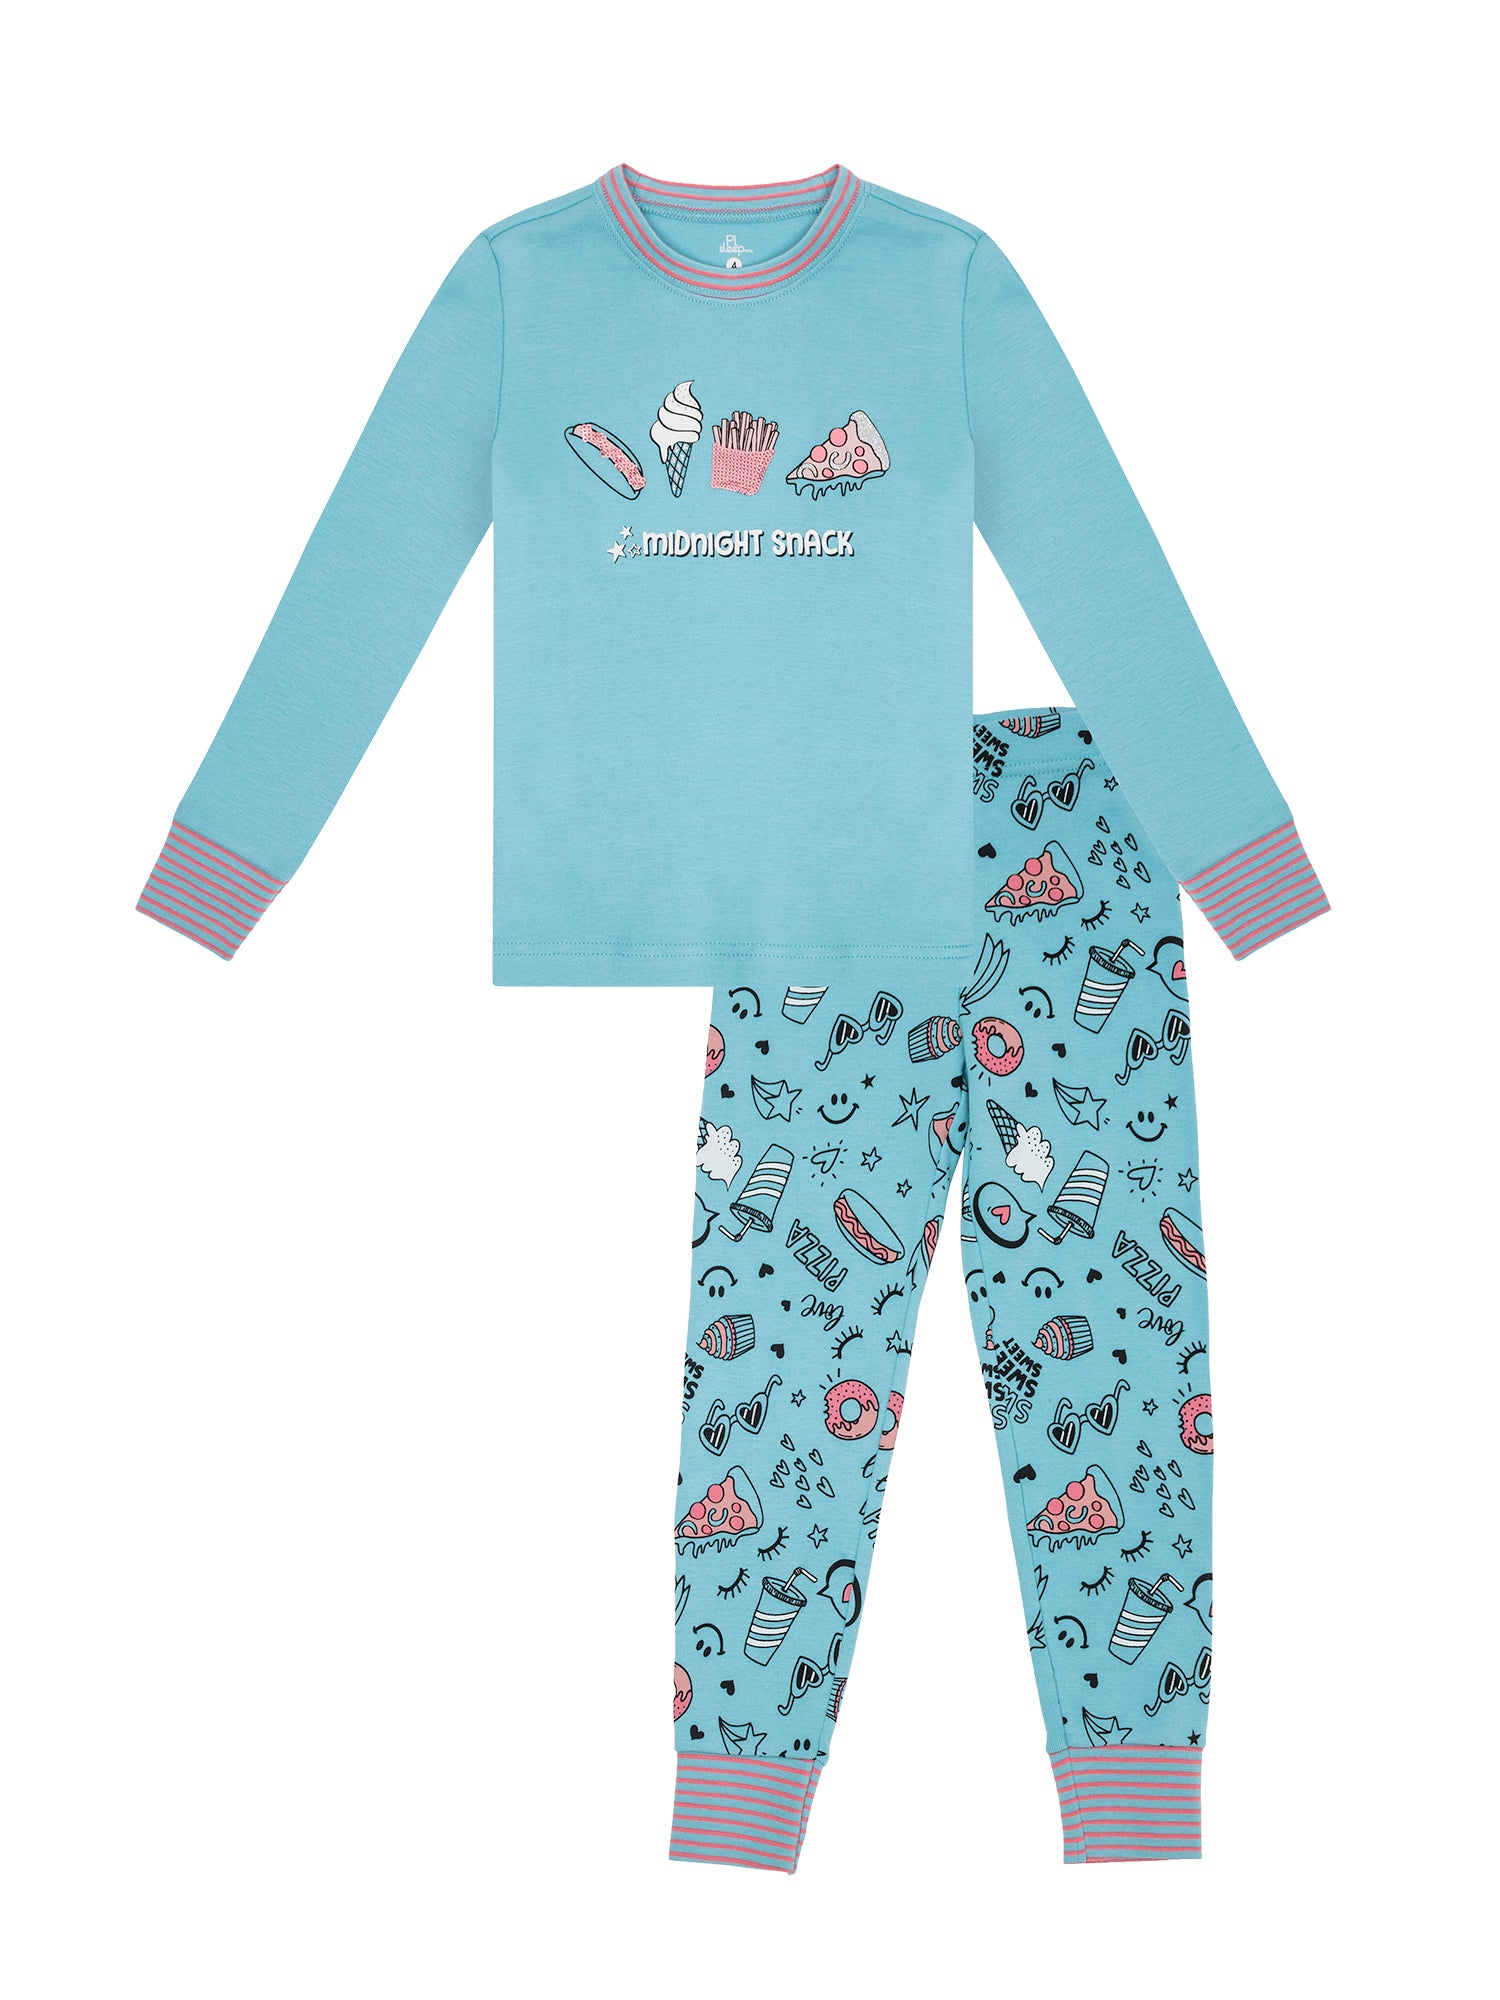 Midnight Snack 2 Piece Pyjamas - Lullaby's Boutique